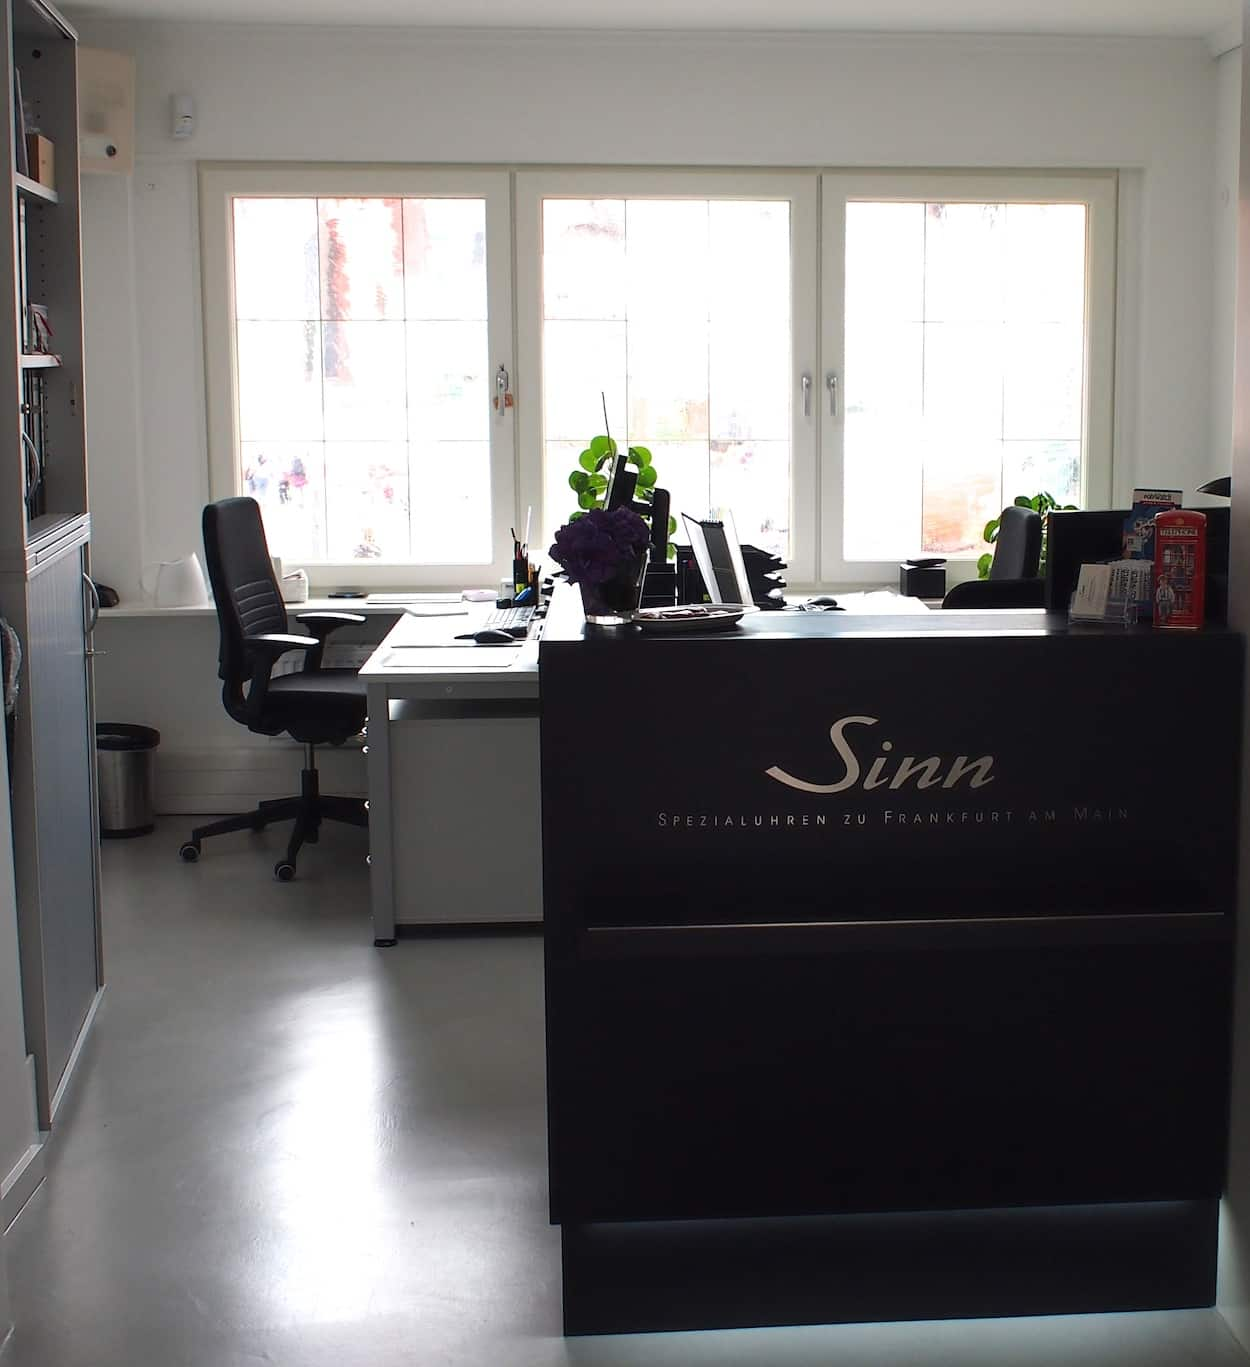 The upstairs service department at the Sinn boutique